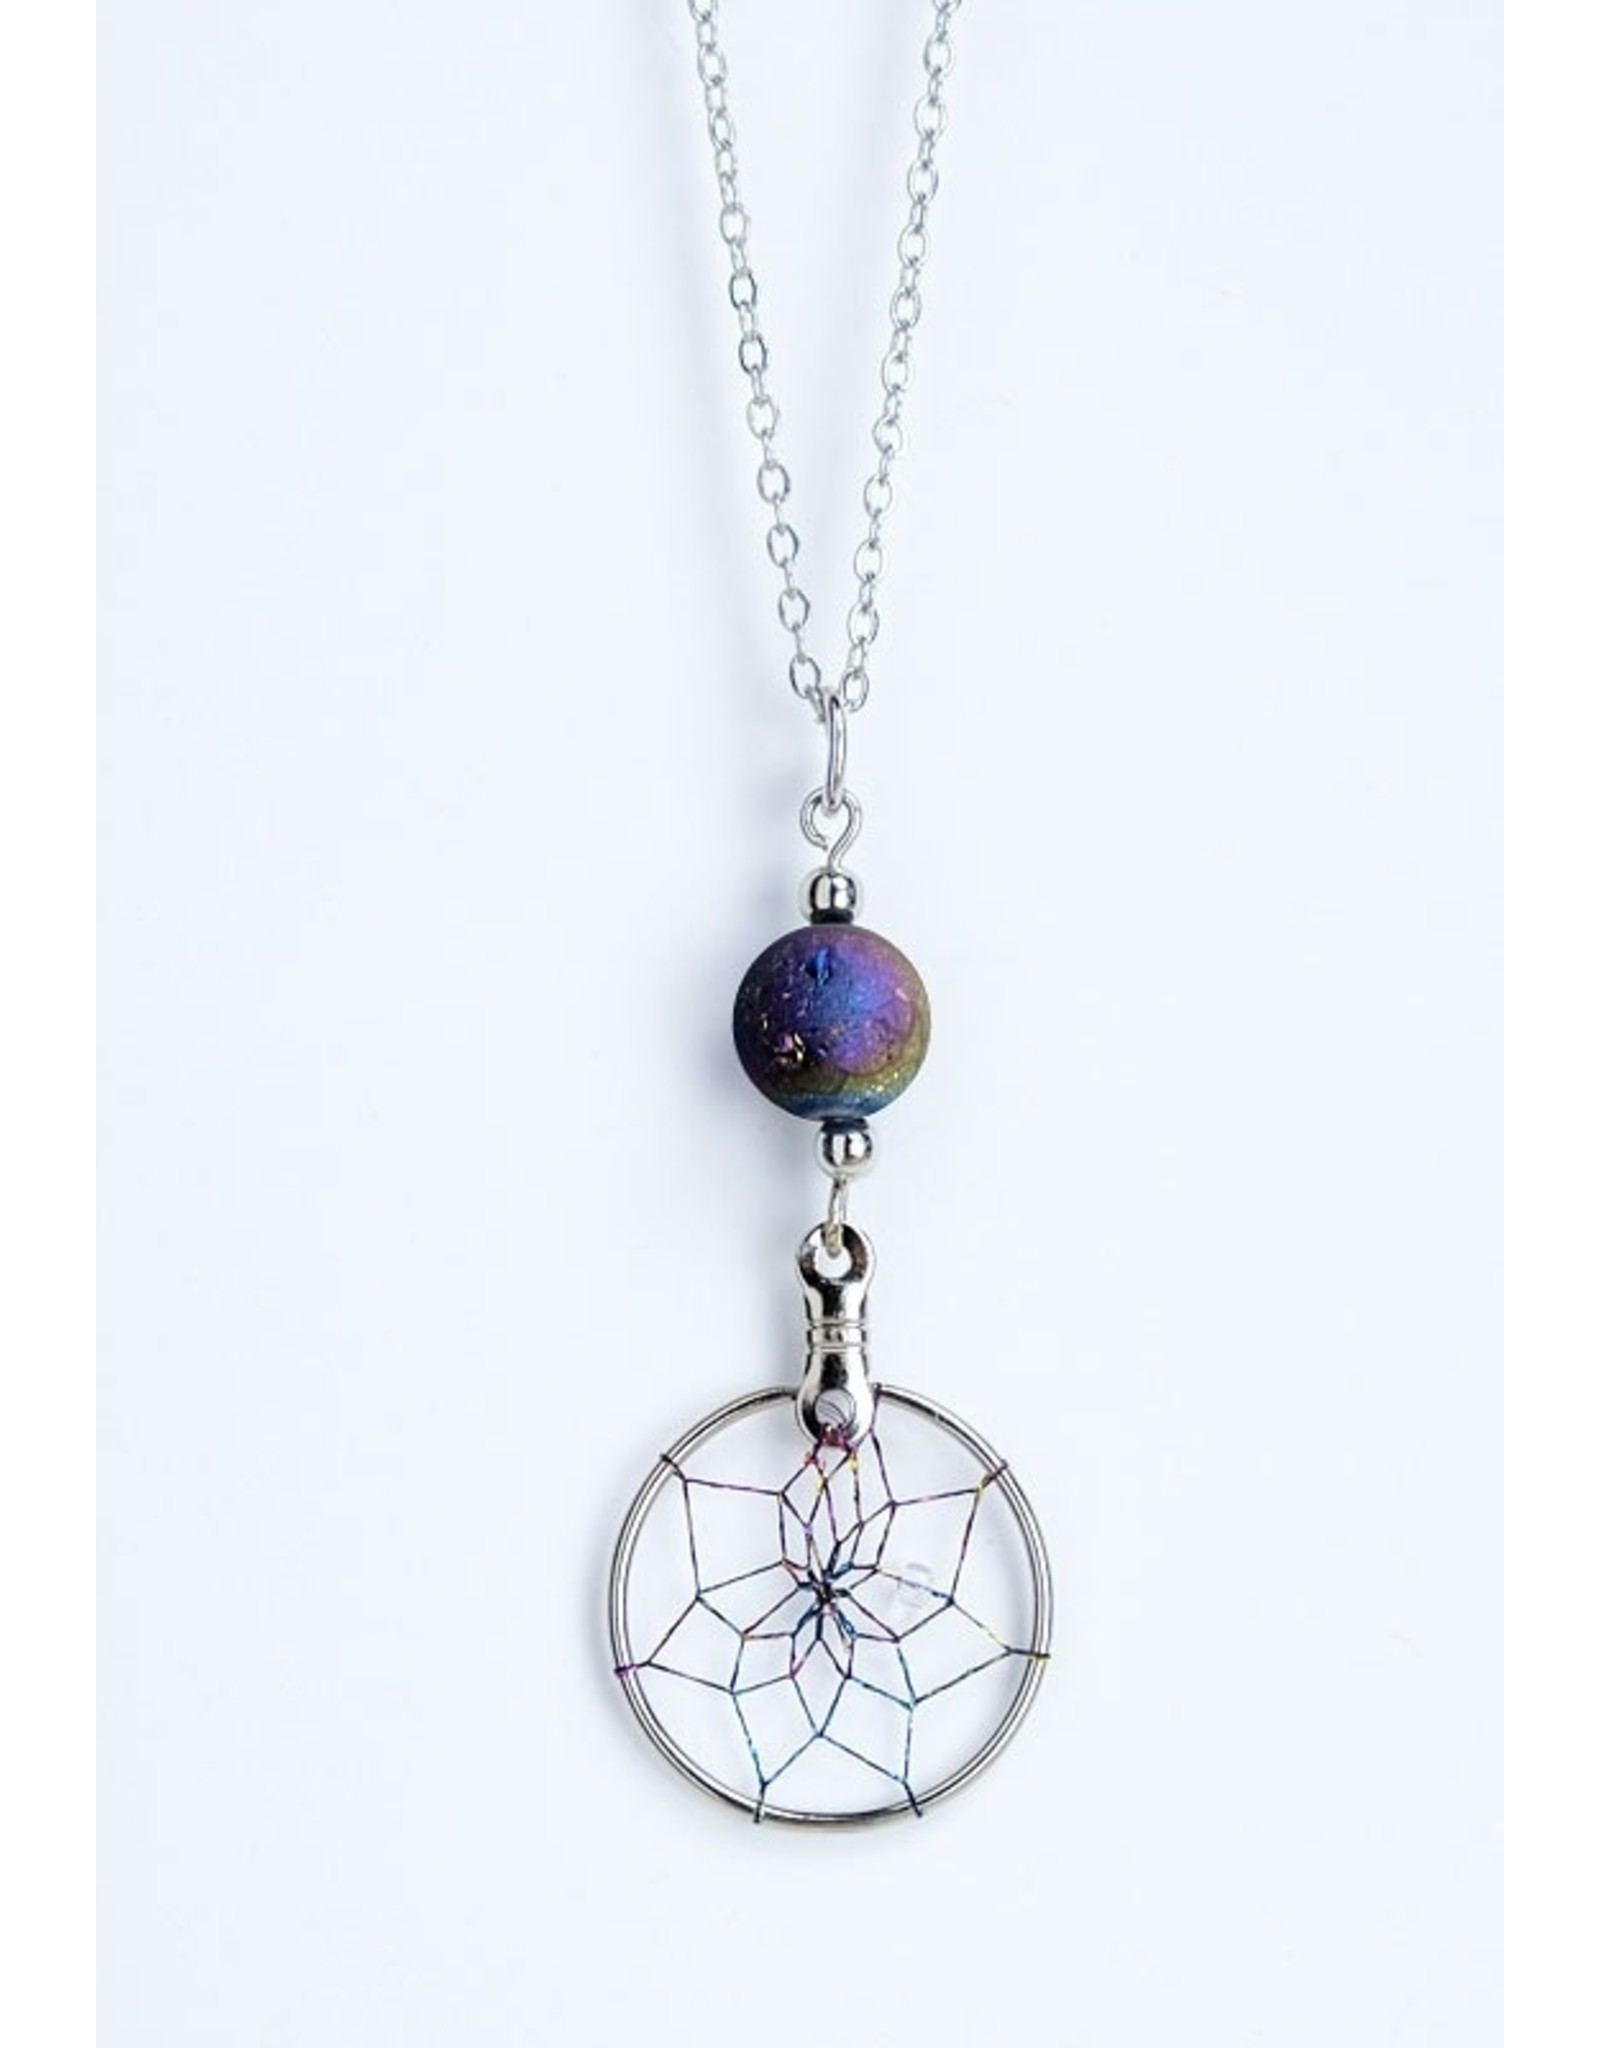 Dreamcatcher Necklace with Rainbow Druzy - DC1007